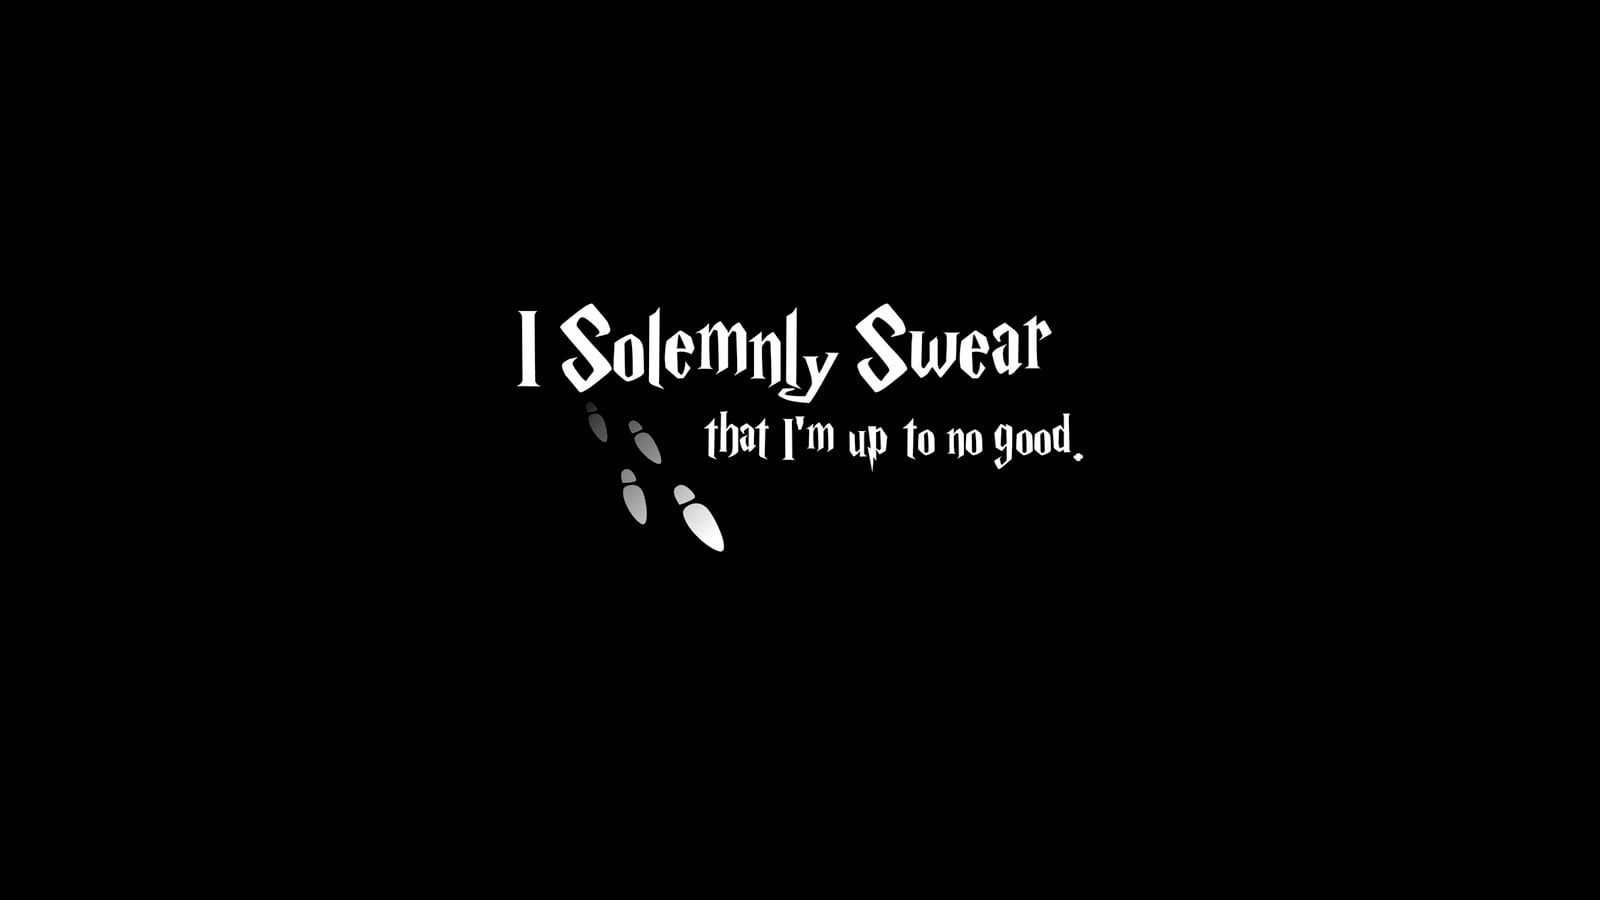 Black Background With Solemnly Swear Text Overlay Harry Potter 720p Wallpaper Hdwal Harry Potter Wallpaper Desktop Wallpaper Harry Potter Simple Backgrounds